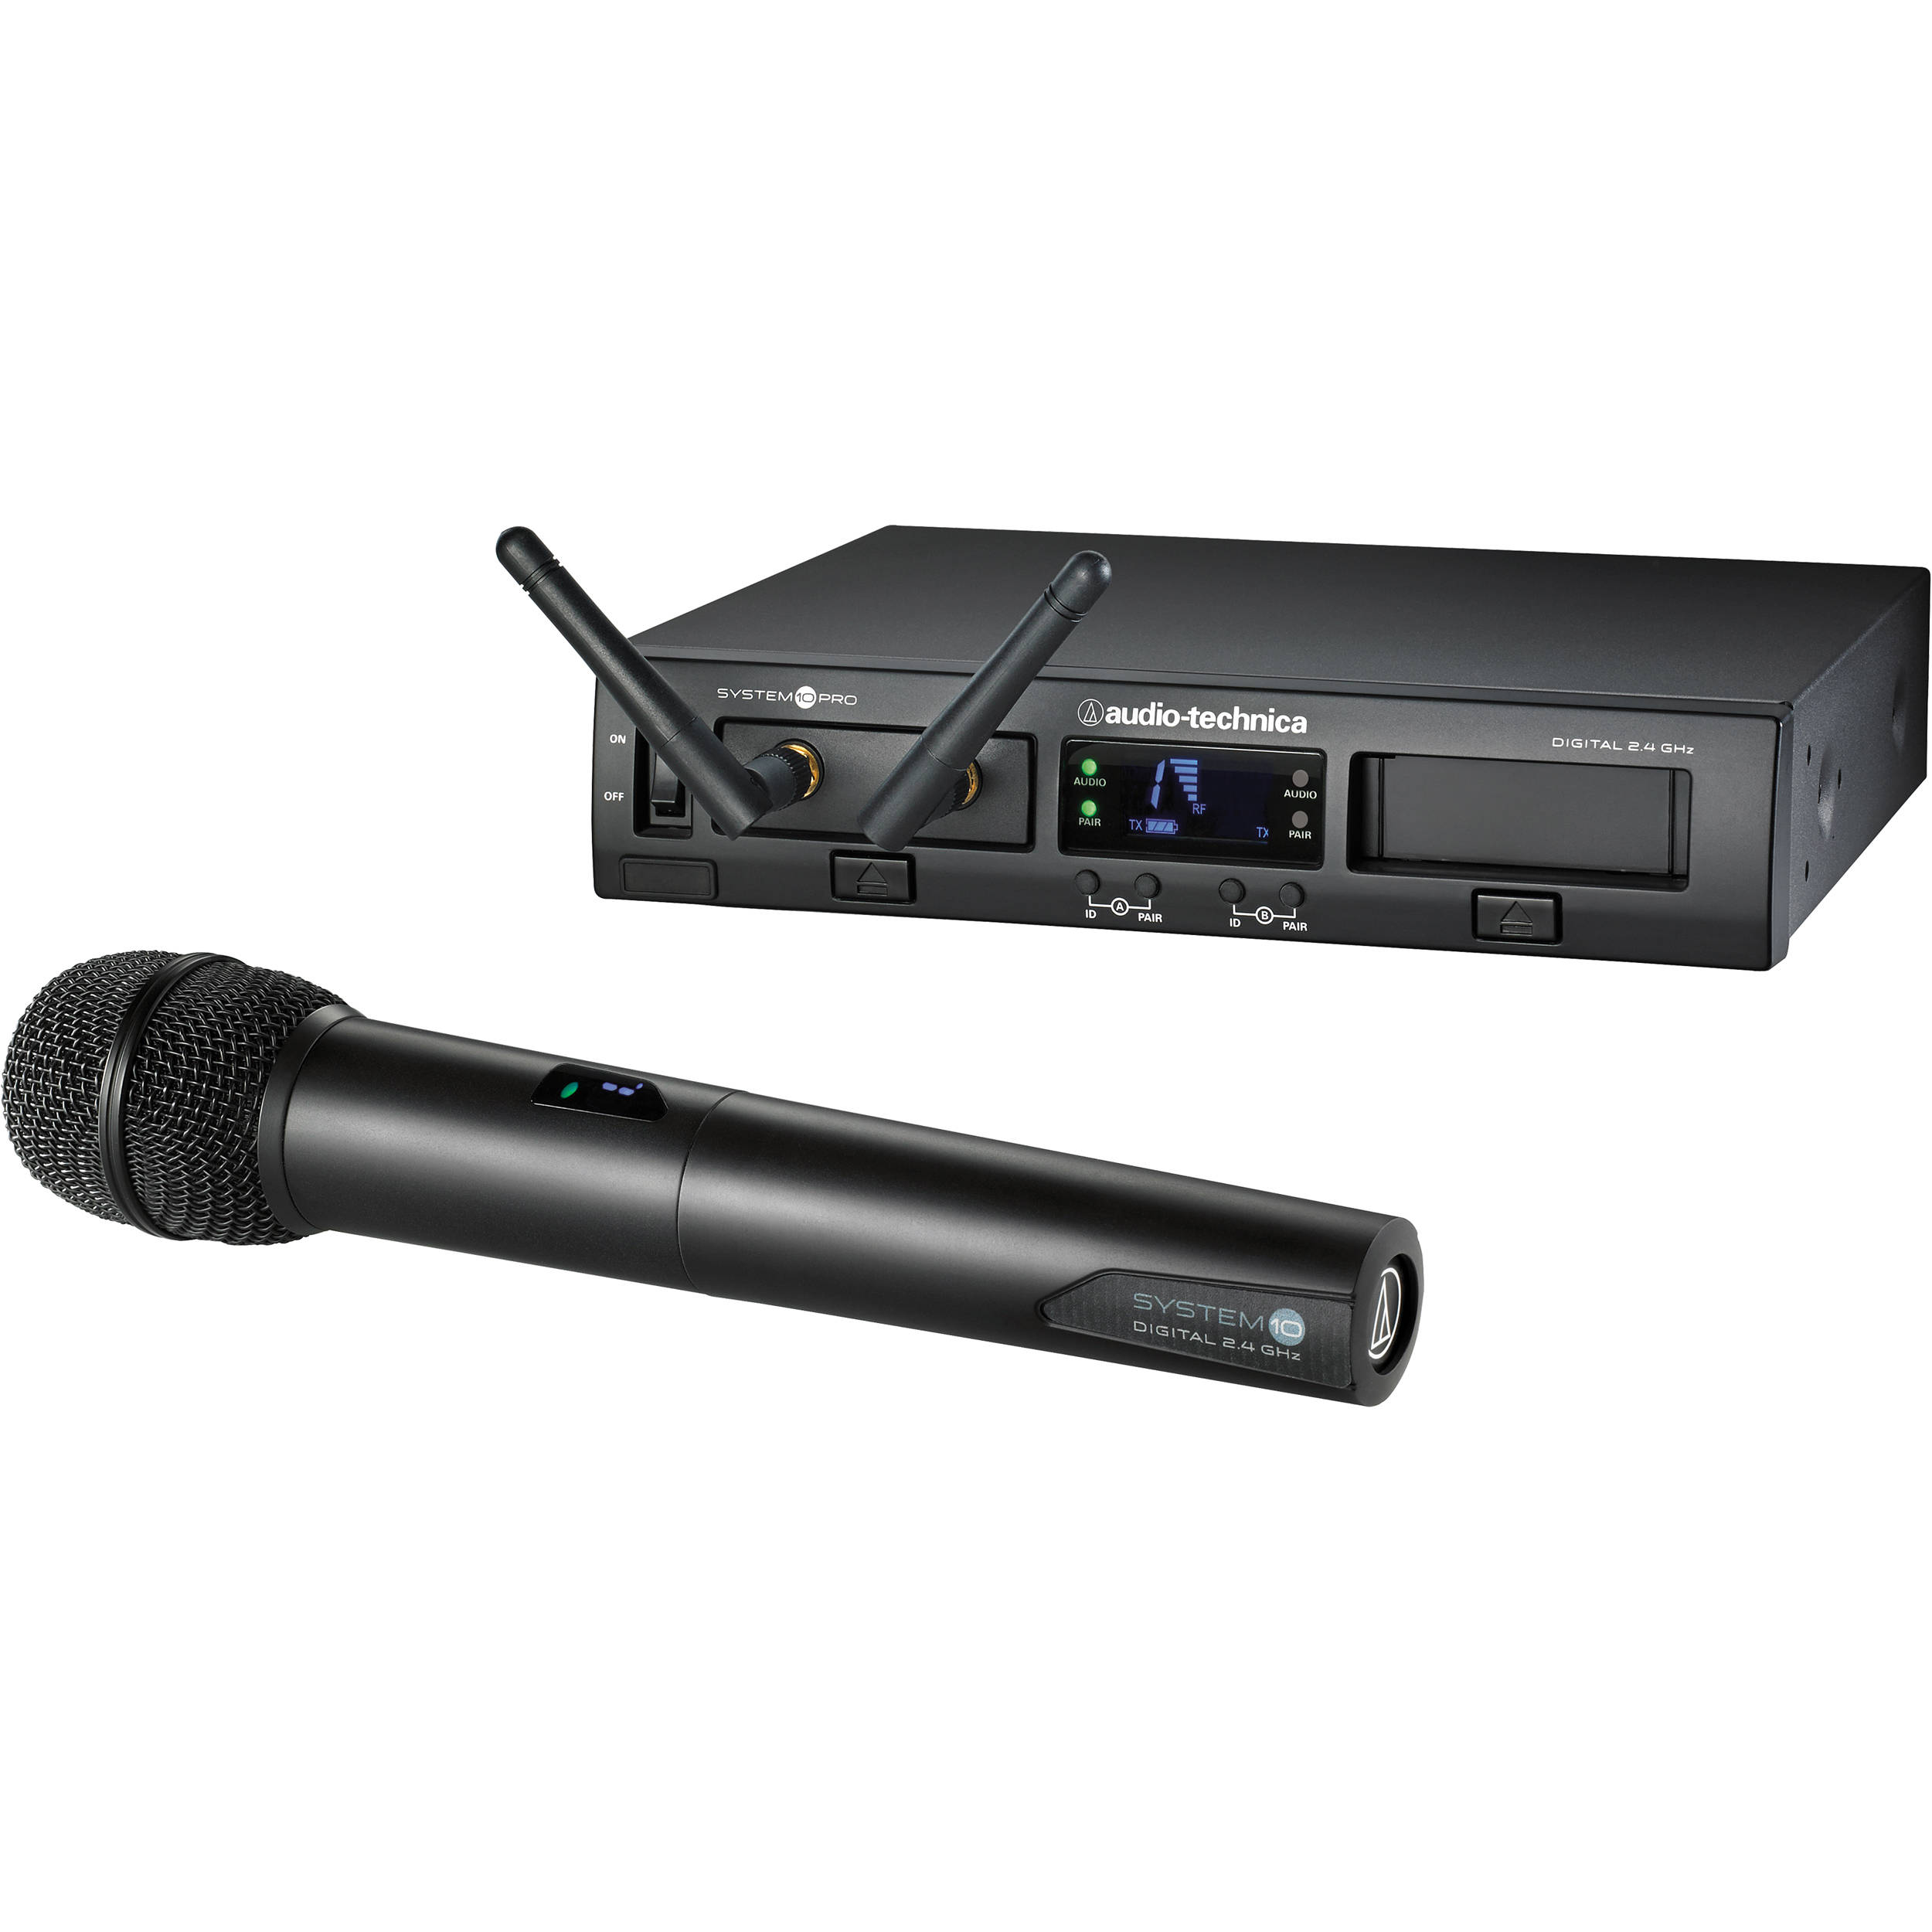 Audio-Technica ATW-1302 System 10 PRO Rack-Mount Digital Handheld Mic System